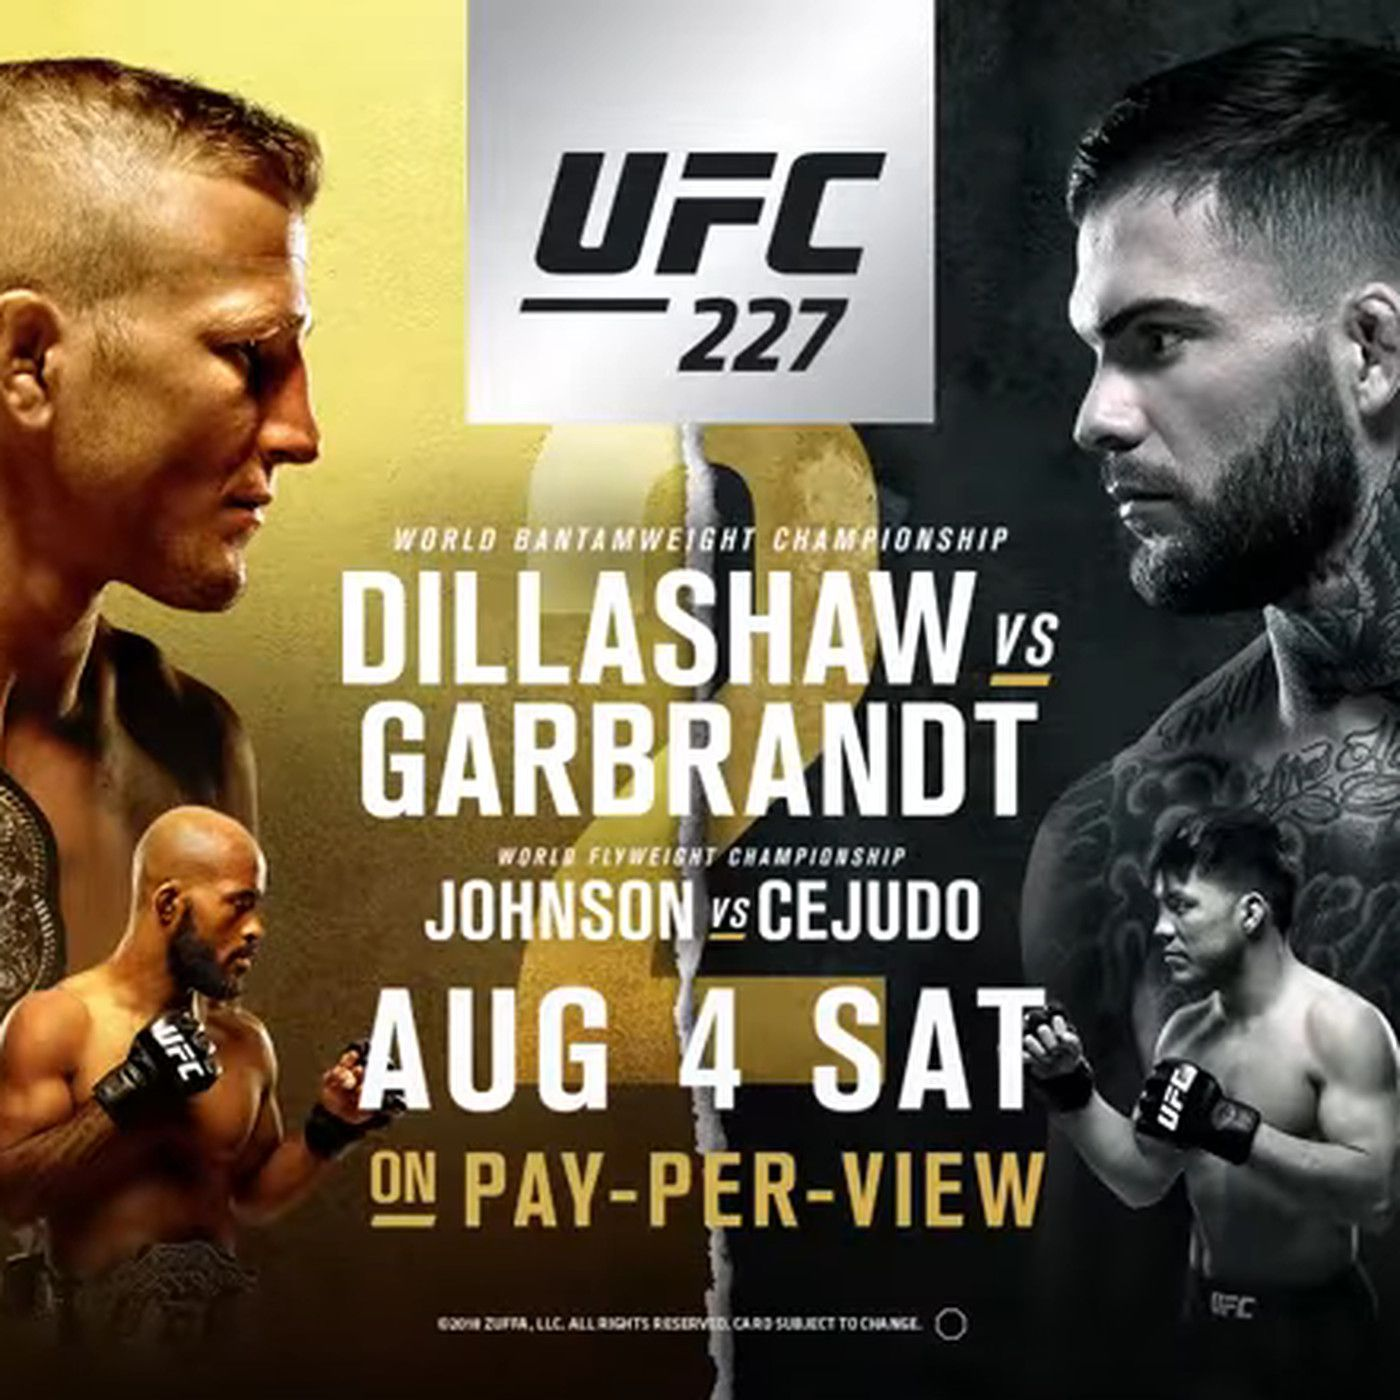 UFC 227 start time, TV schedule, who is fighting tonight at 'Dillashaw vs  Garbrandt 2' - MMAmania.com